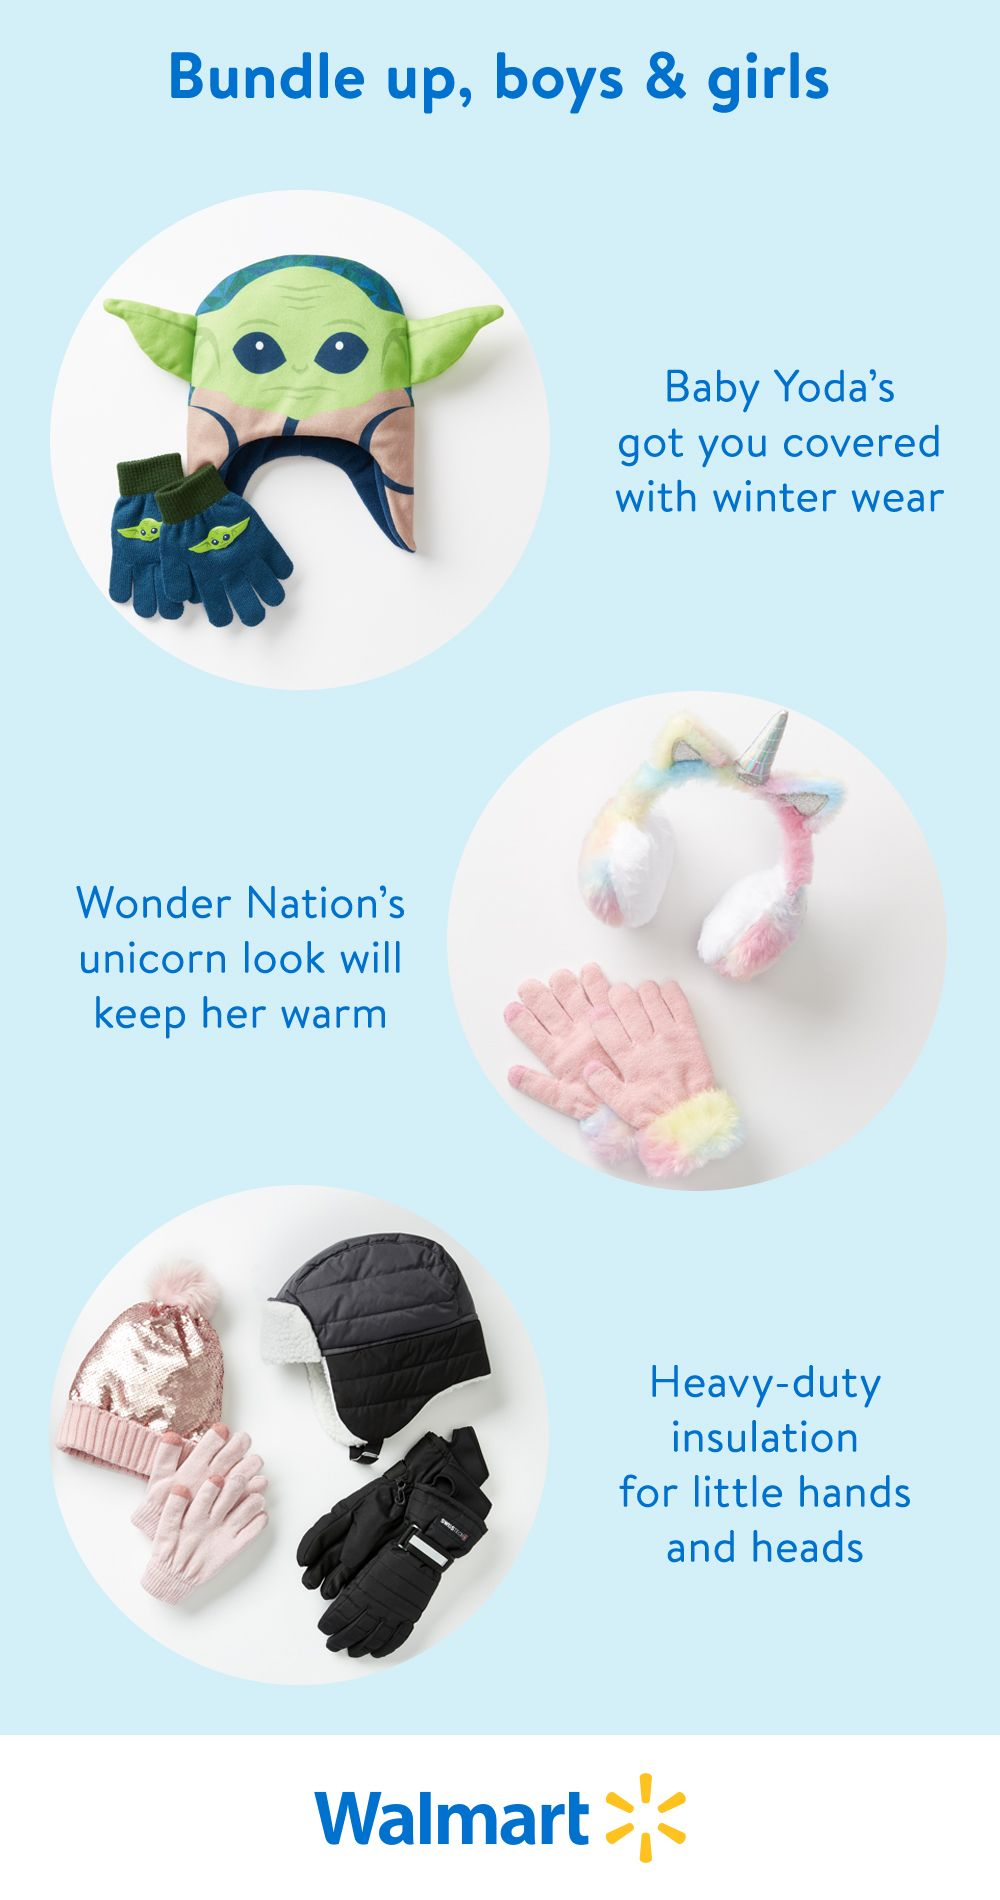 Let your little one express their personality and unique sense of style with a custom winter look. Shop Walmart for seasonal accessories featuring fan favorites like Baby Yoda, fantastic fantasy fashions from Wonder Nation, and more.